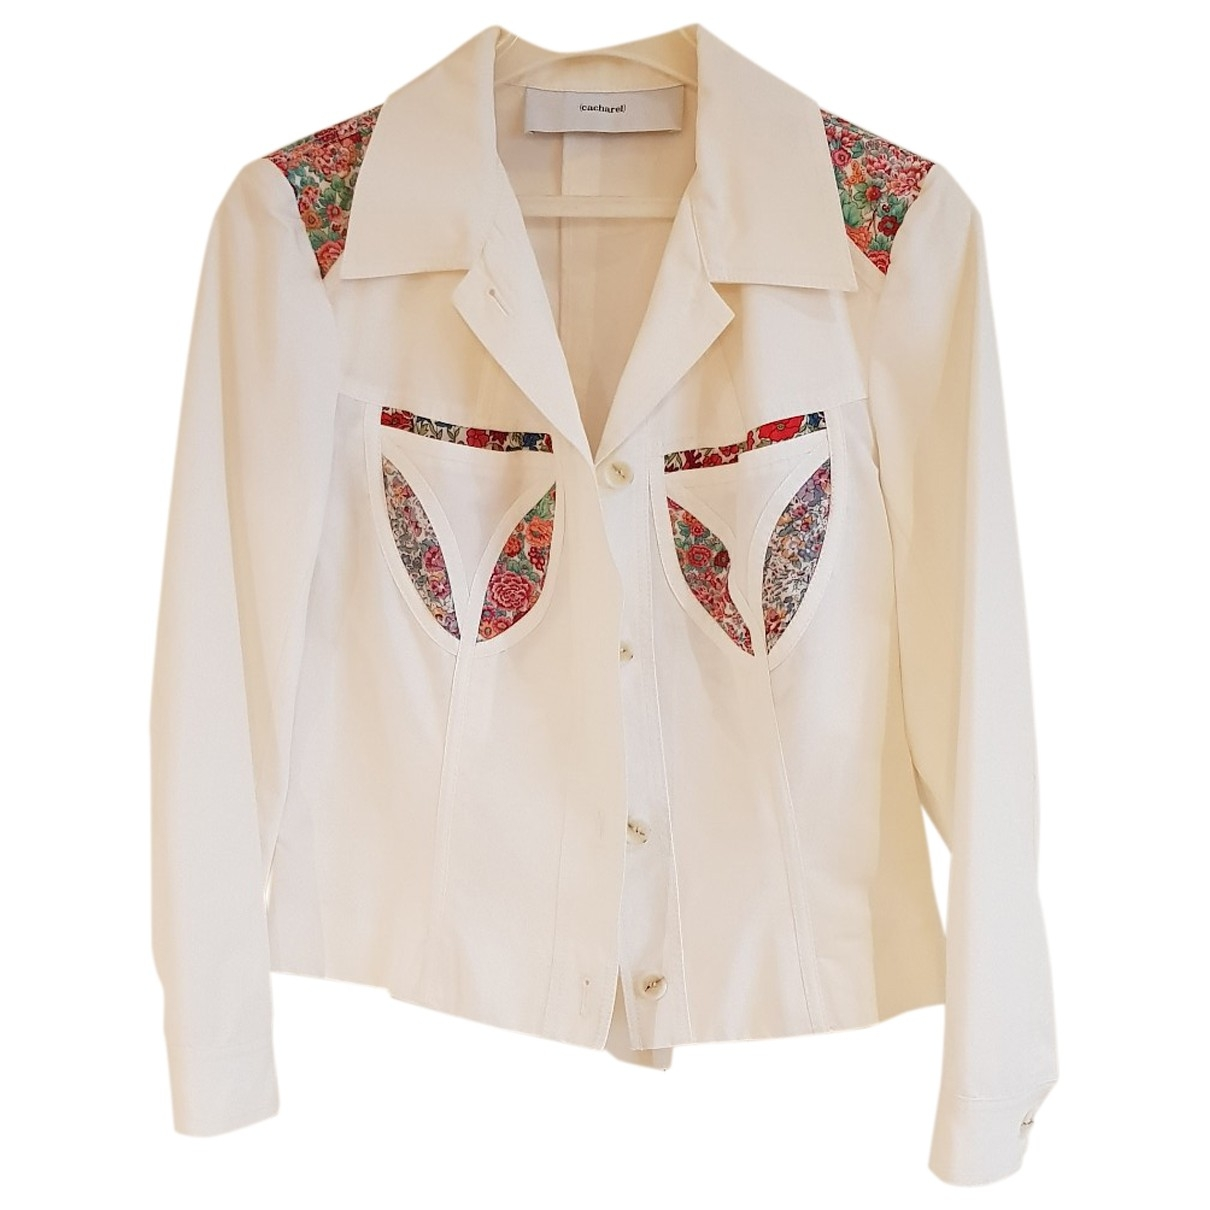 Cacharel \N White Cotton jacket for Women 38 FR